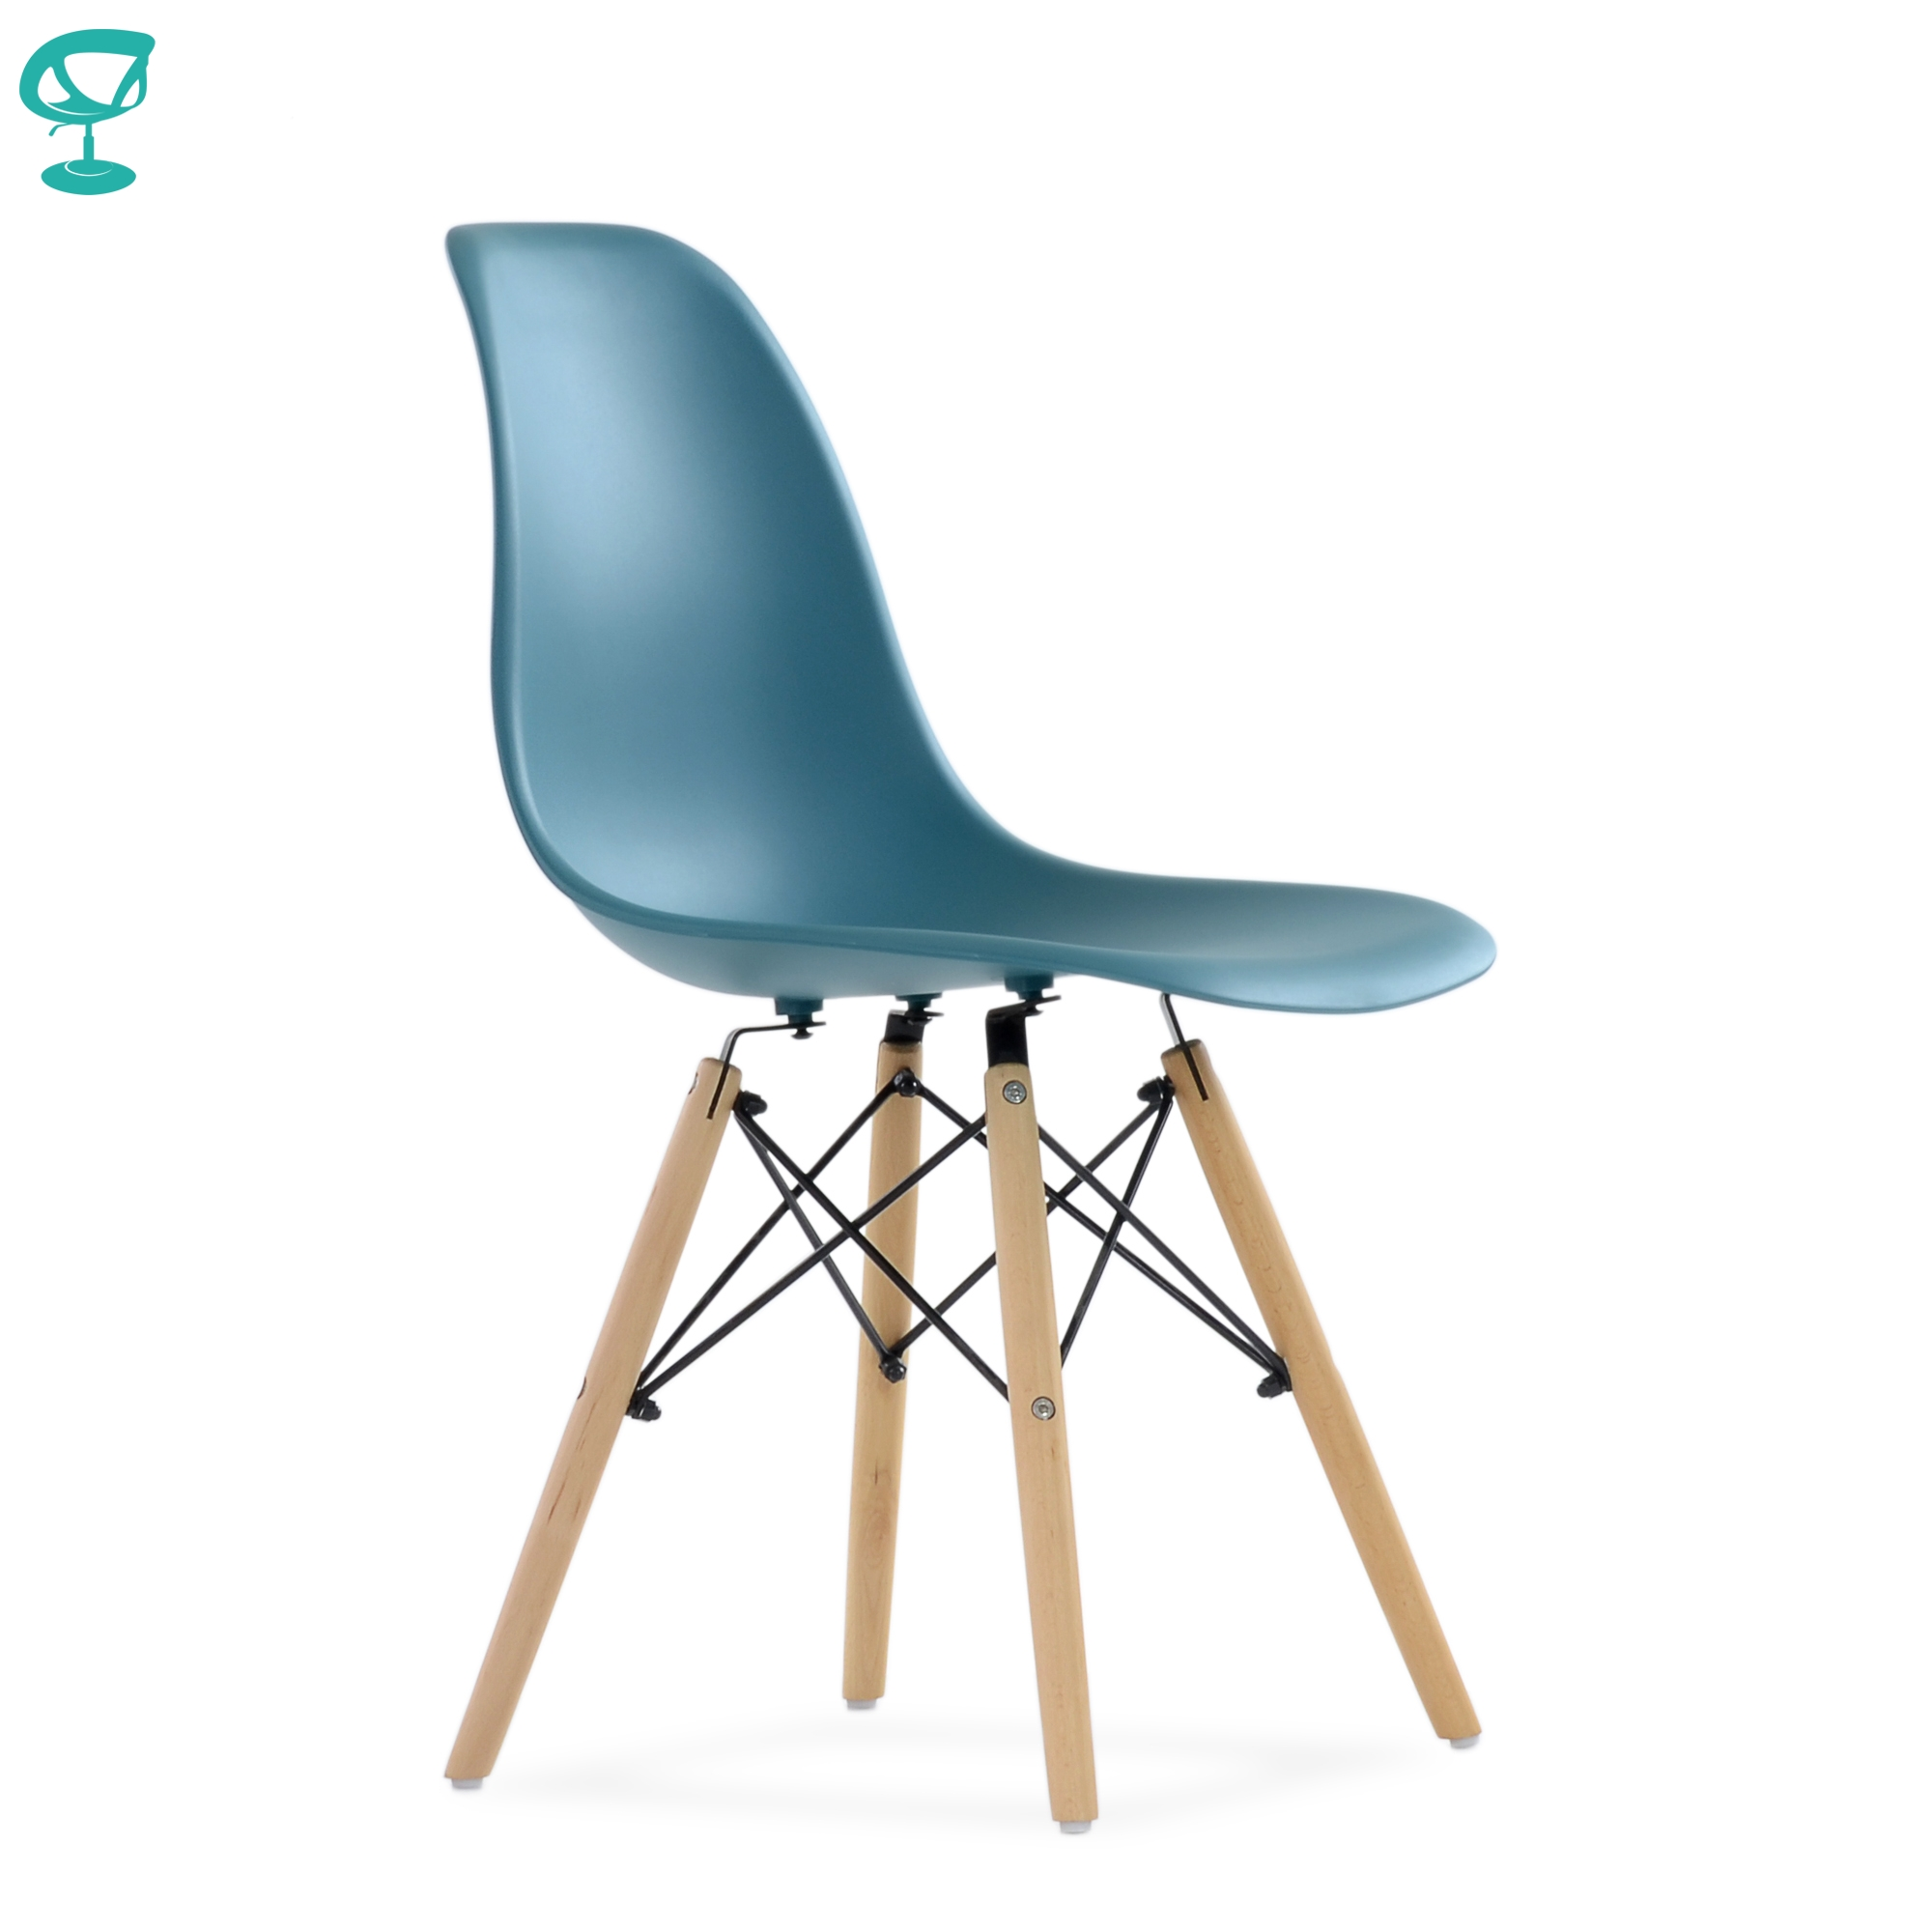 95756 Barneo N-12 Plastic Wood Kitchen Breakfast Interior Stool Bar Chair Kitchen Furniture Green-blue Free Shipping In Russia